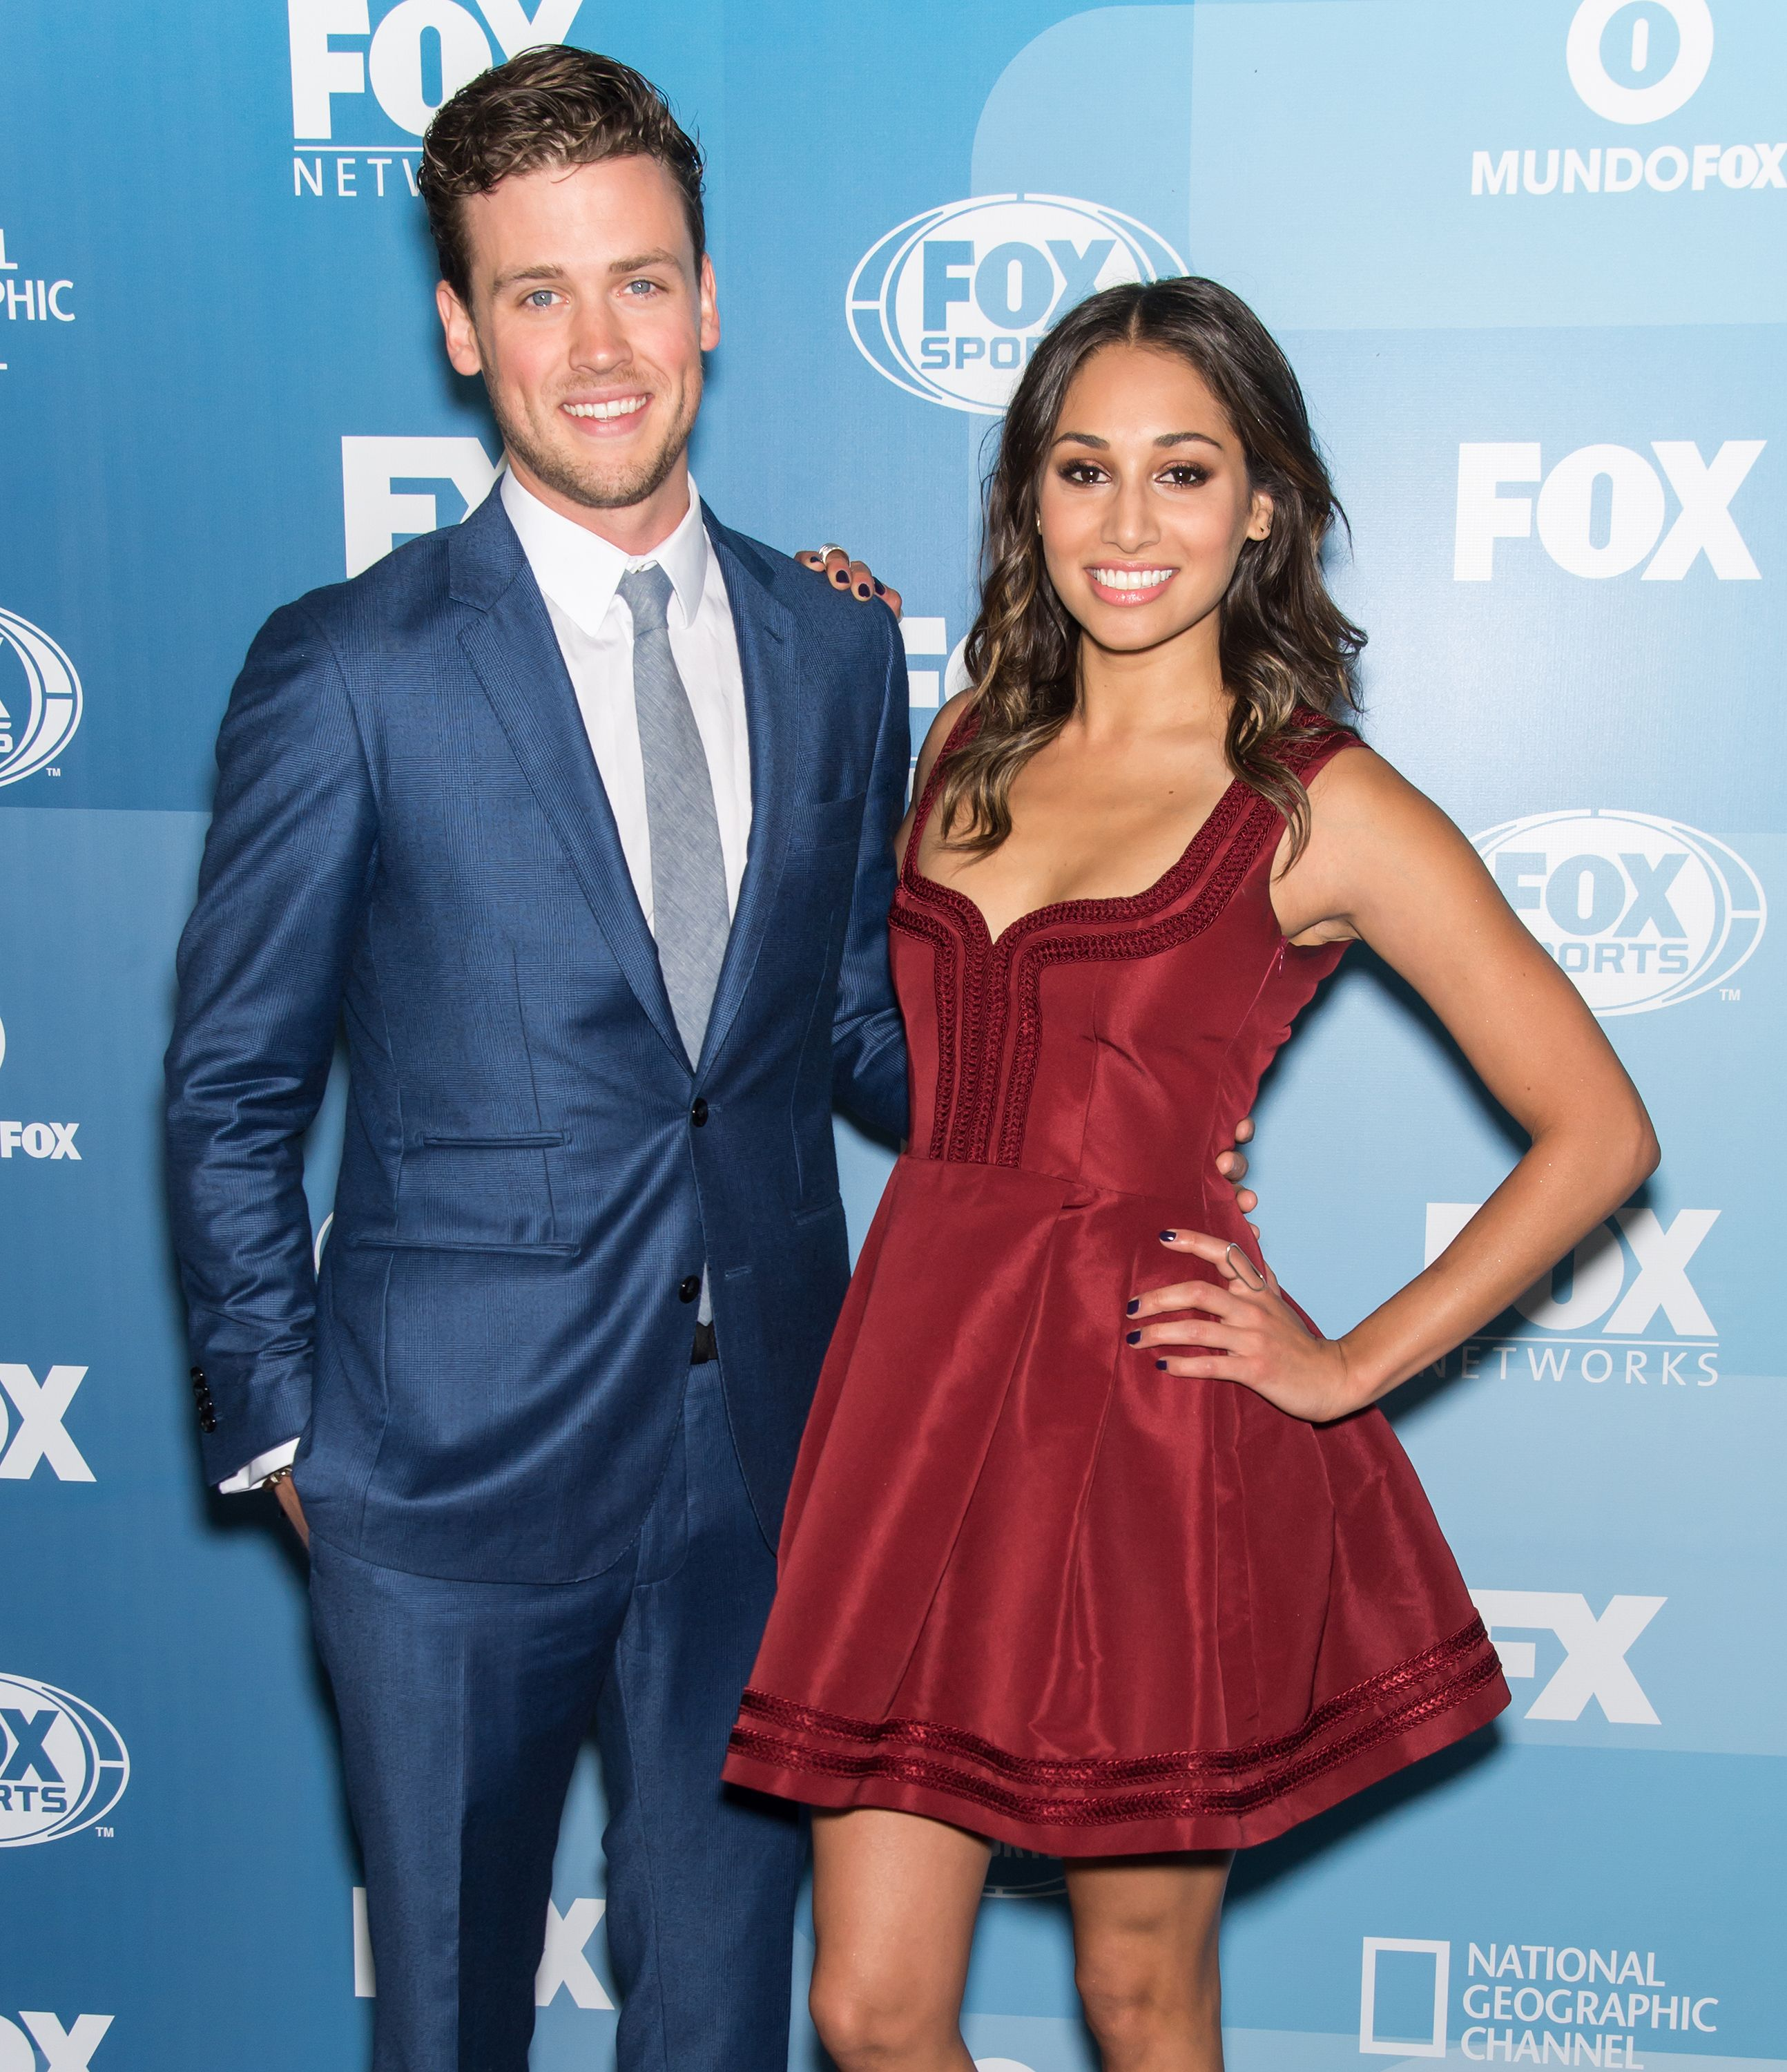 ack Cutmore-Scott and Meaghan Rath attend 2015 FOX Programming Presentation / Photo: Getty Images